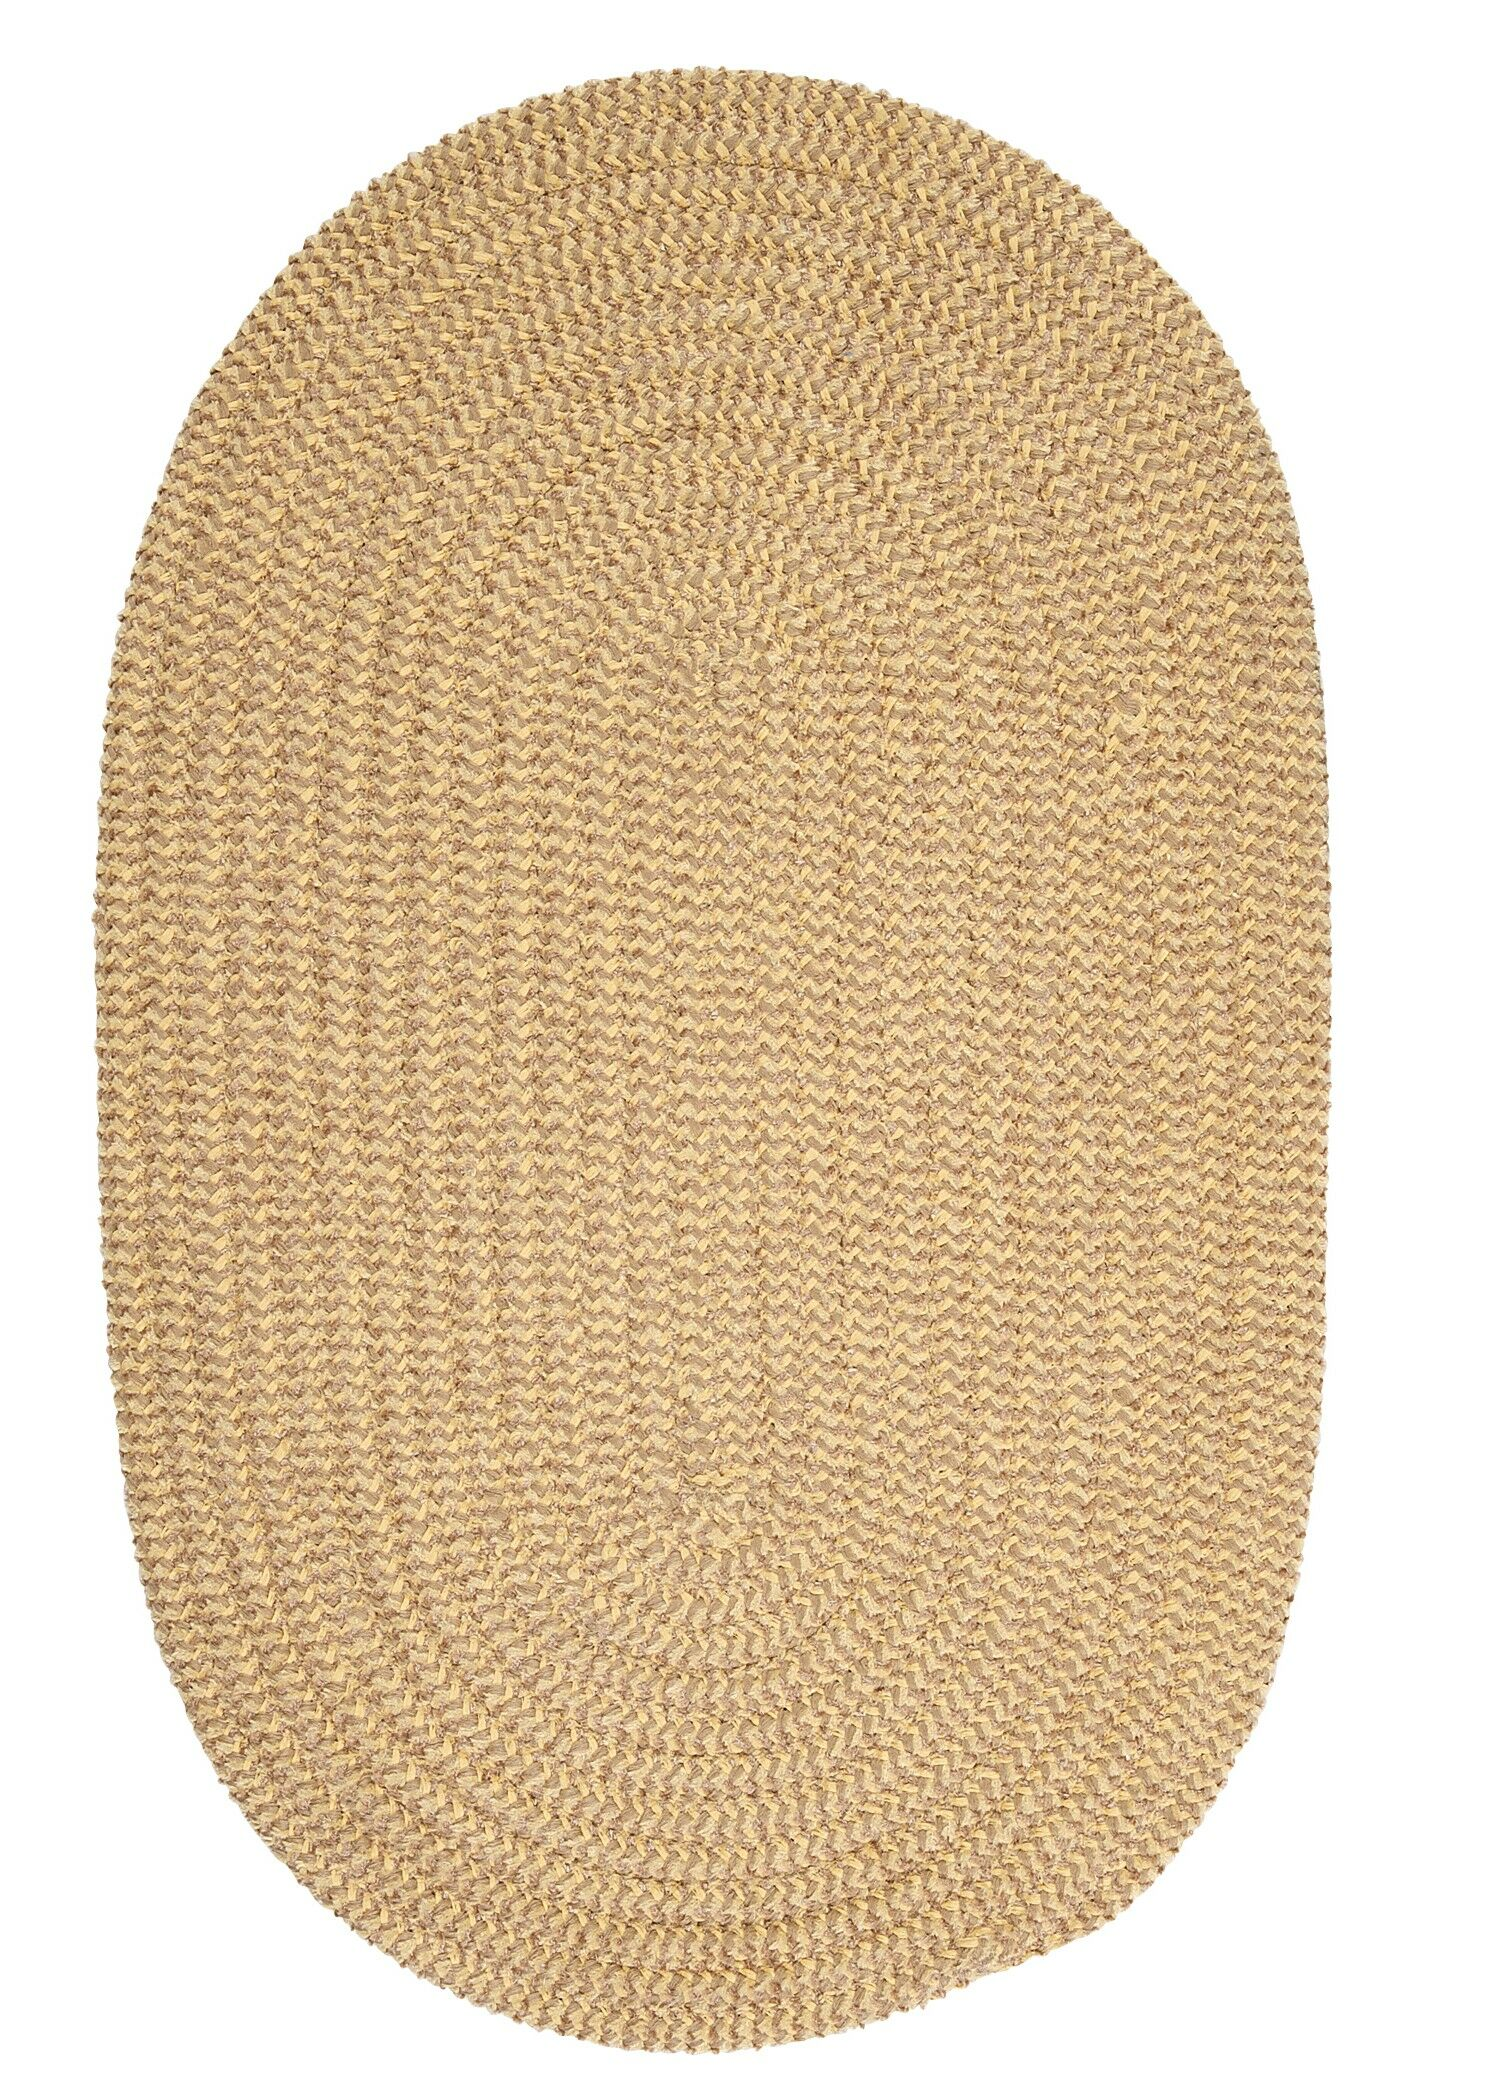 Hale Pale Banana Check Indoor/Outdoor Area Rug Rug Size: Oval 2' x 4'